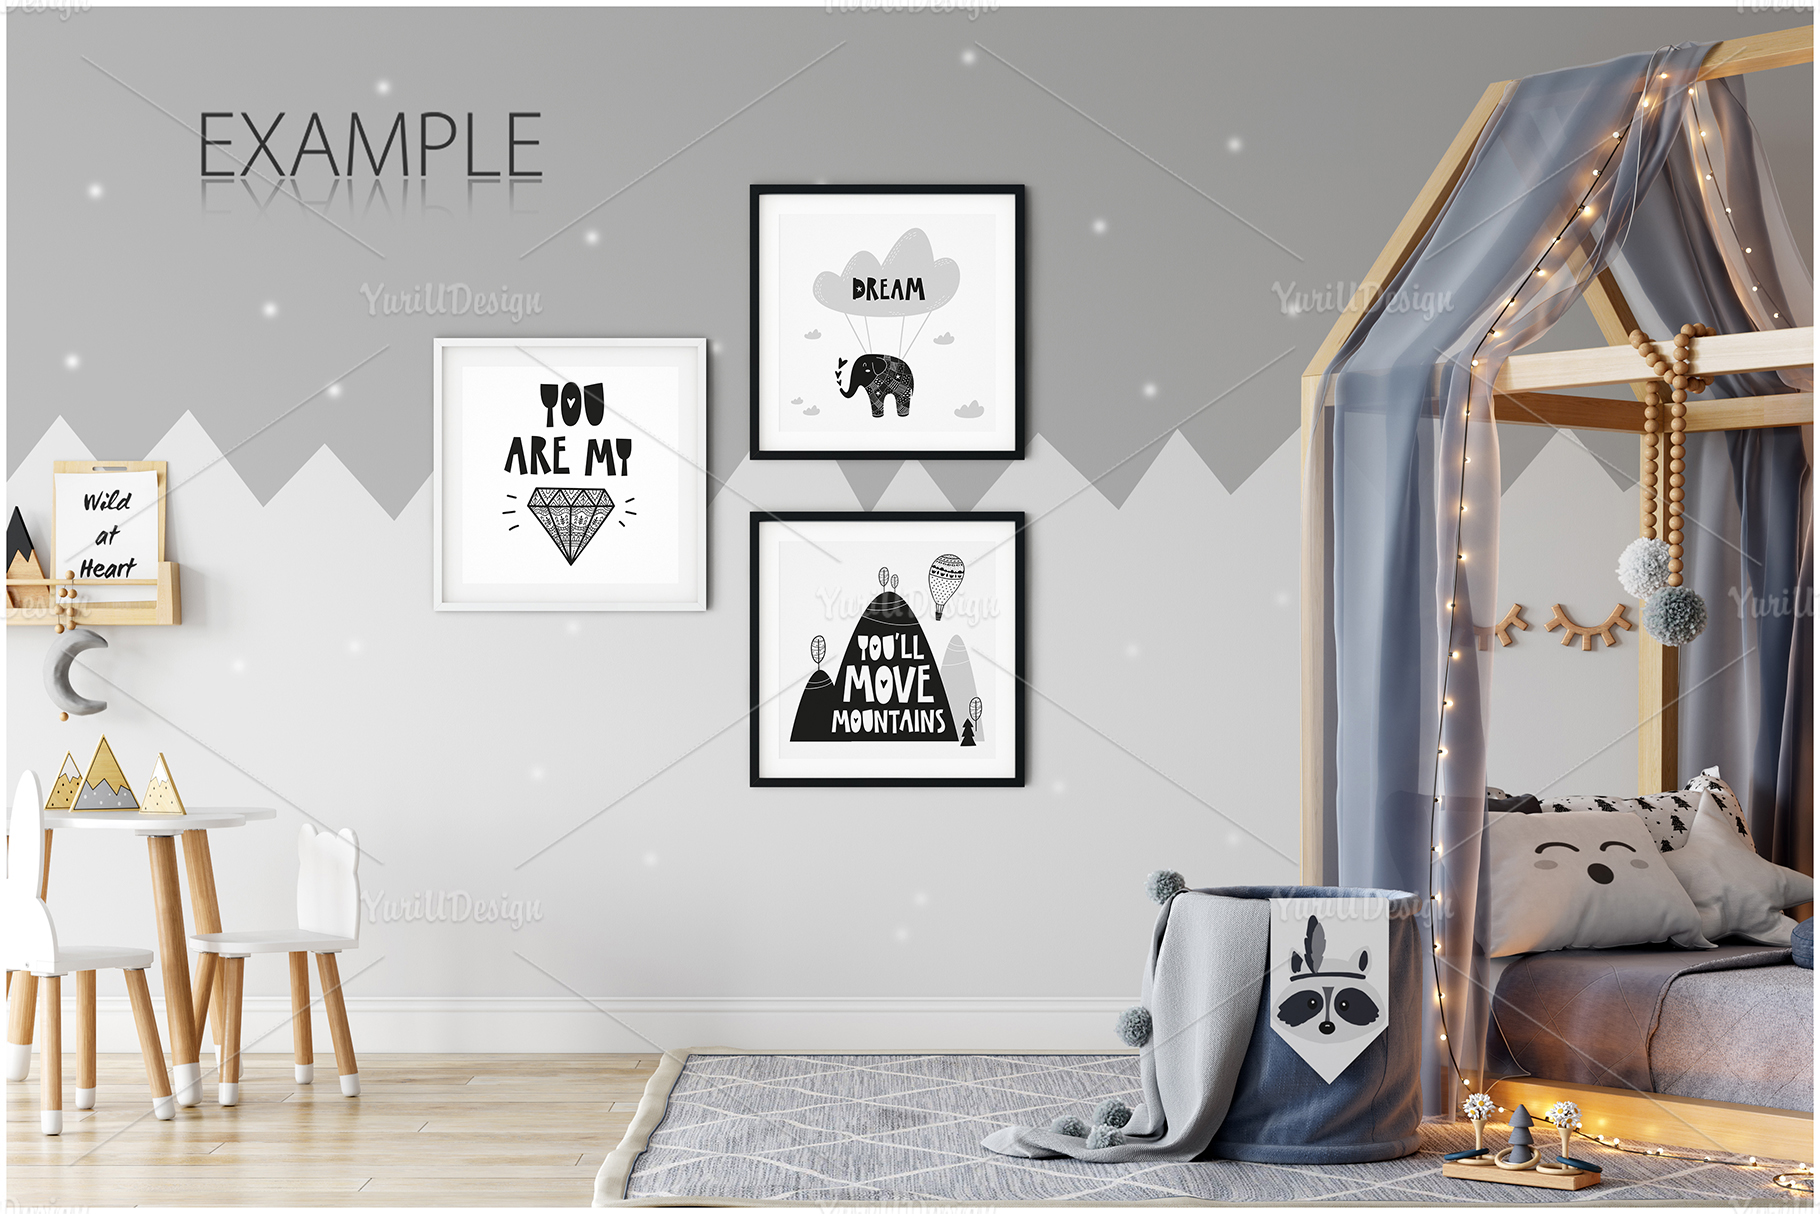 Kids Frames & Wall Mockup Bundle - 5 example image 14